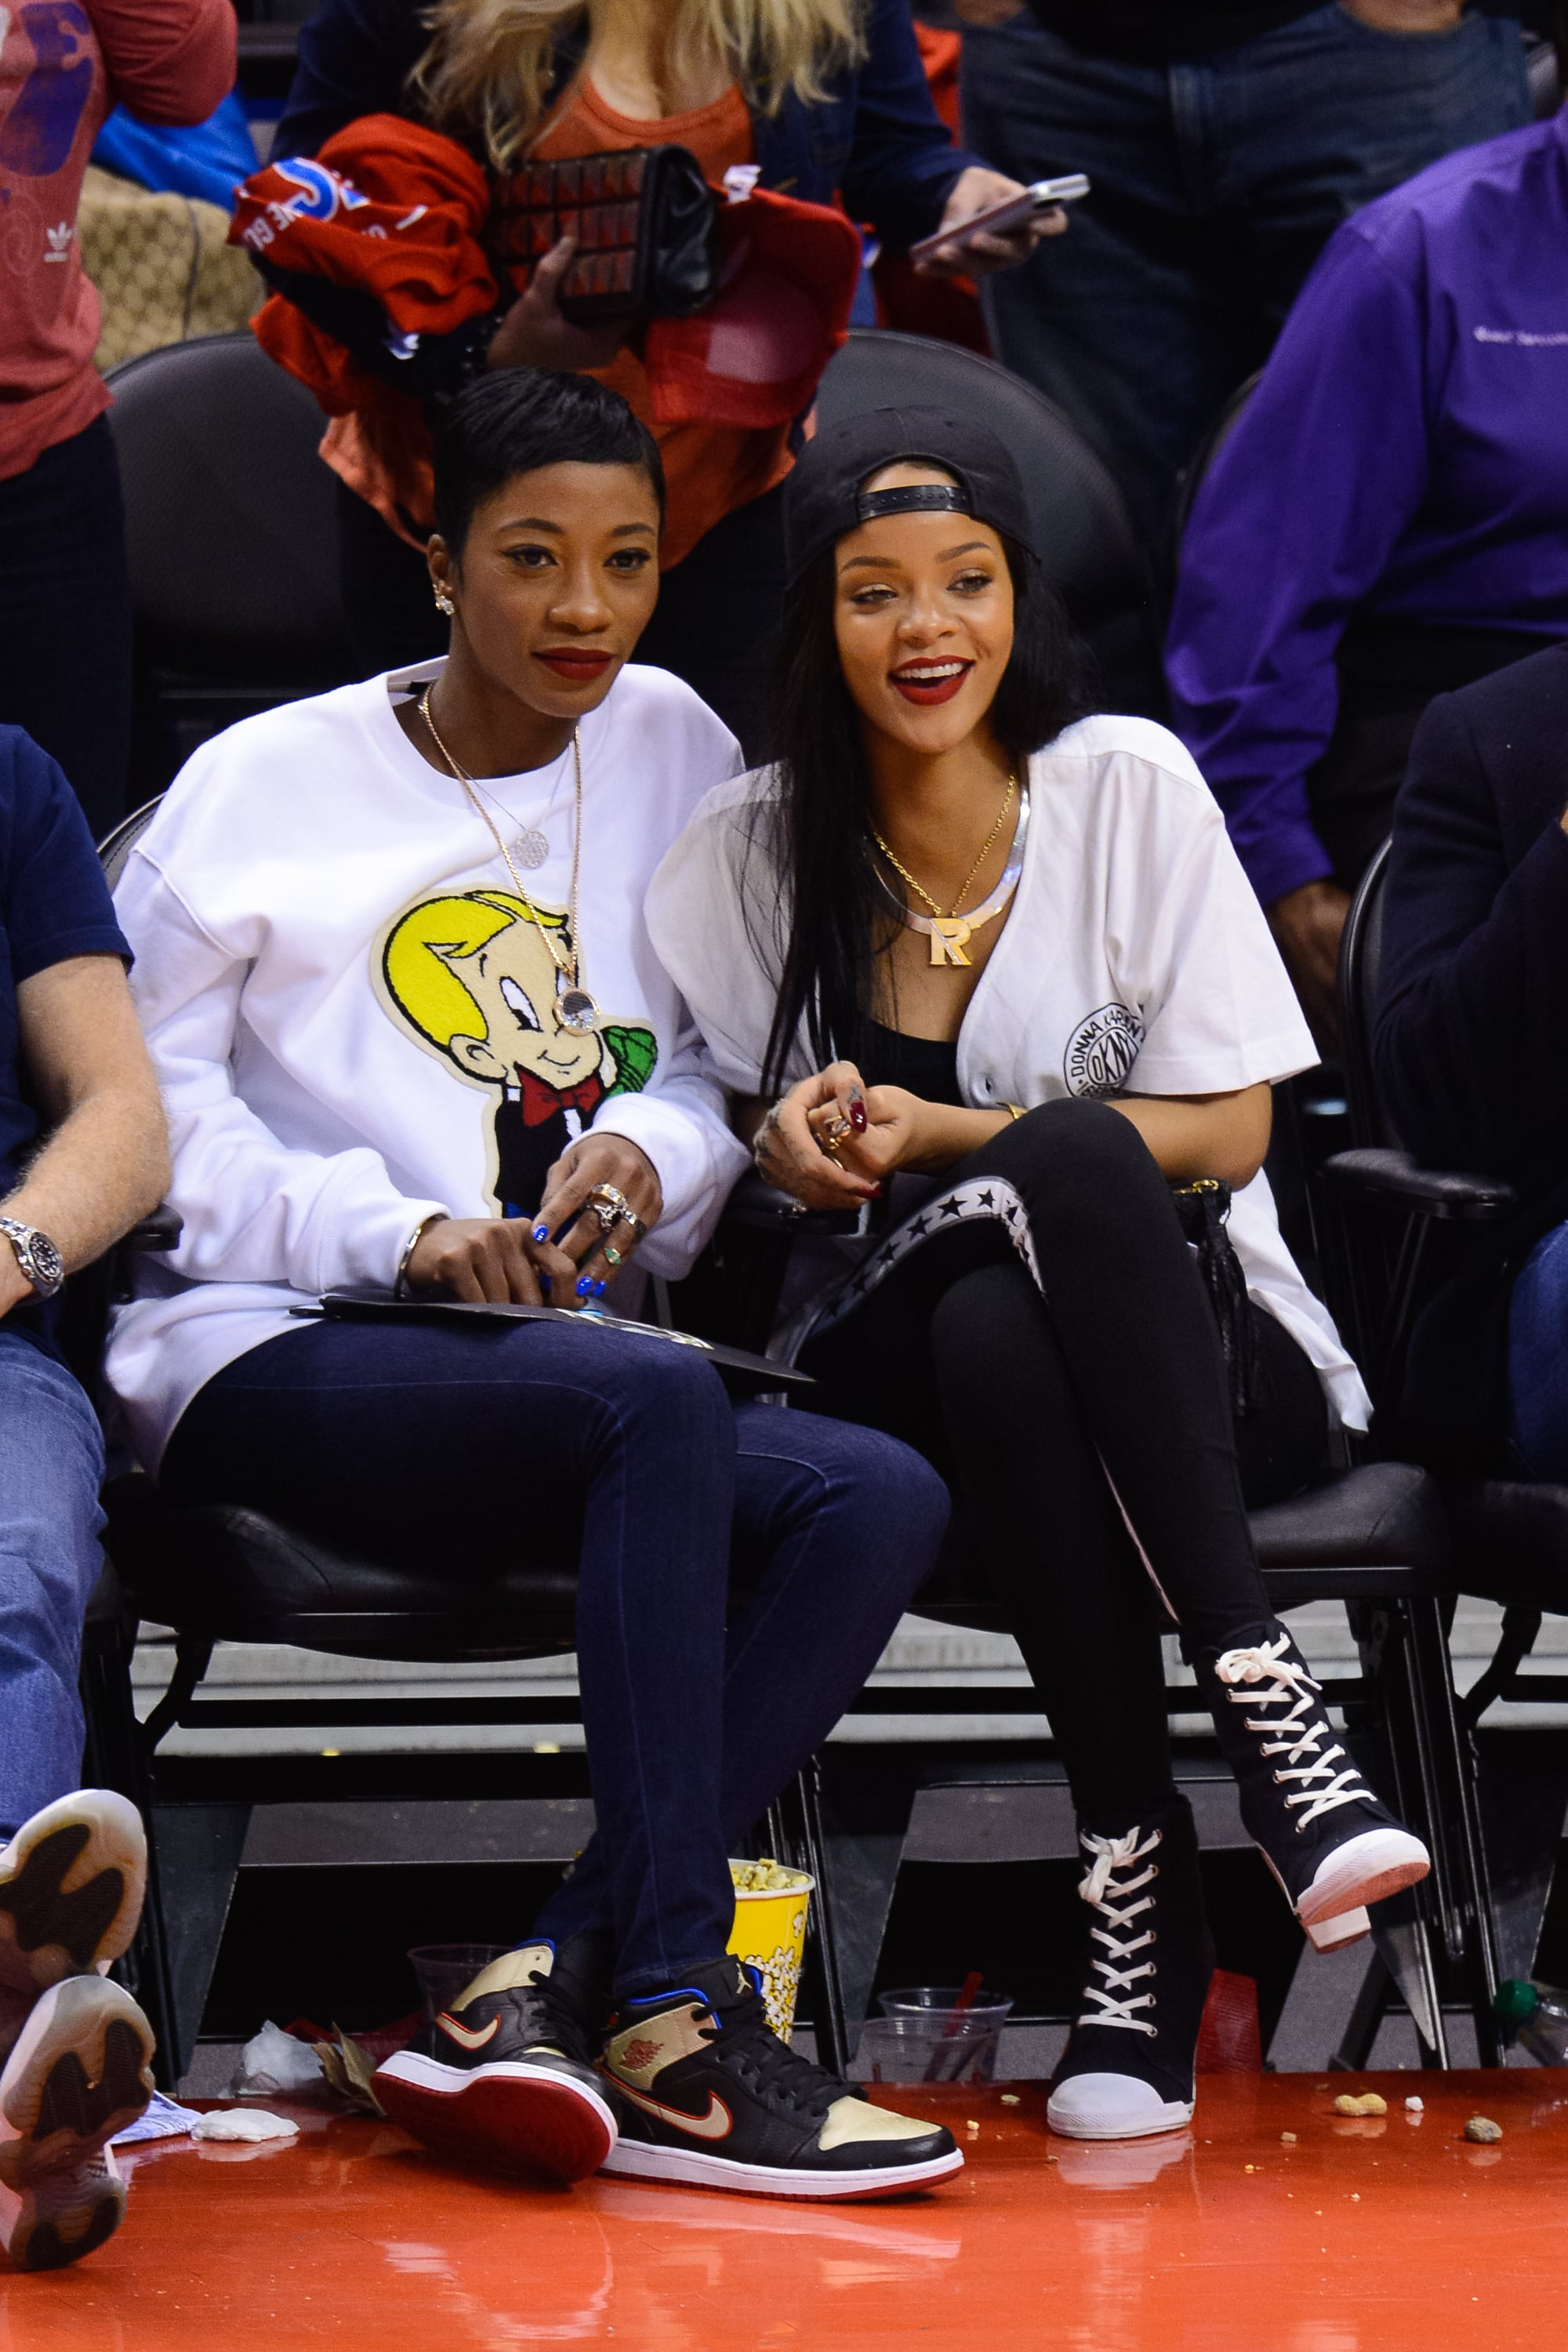 Courtside Giggles